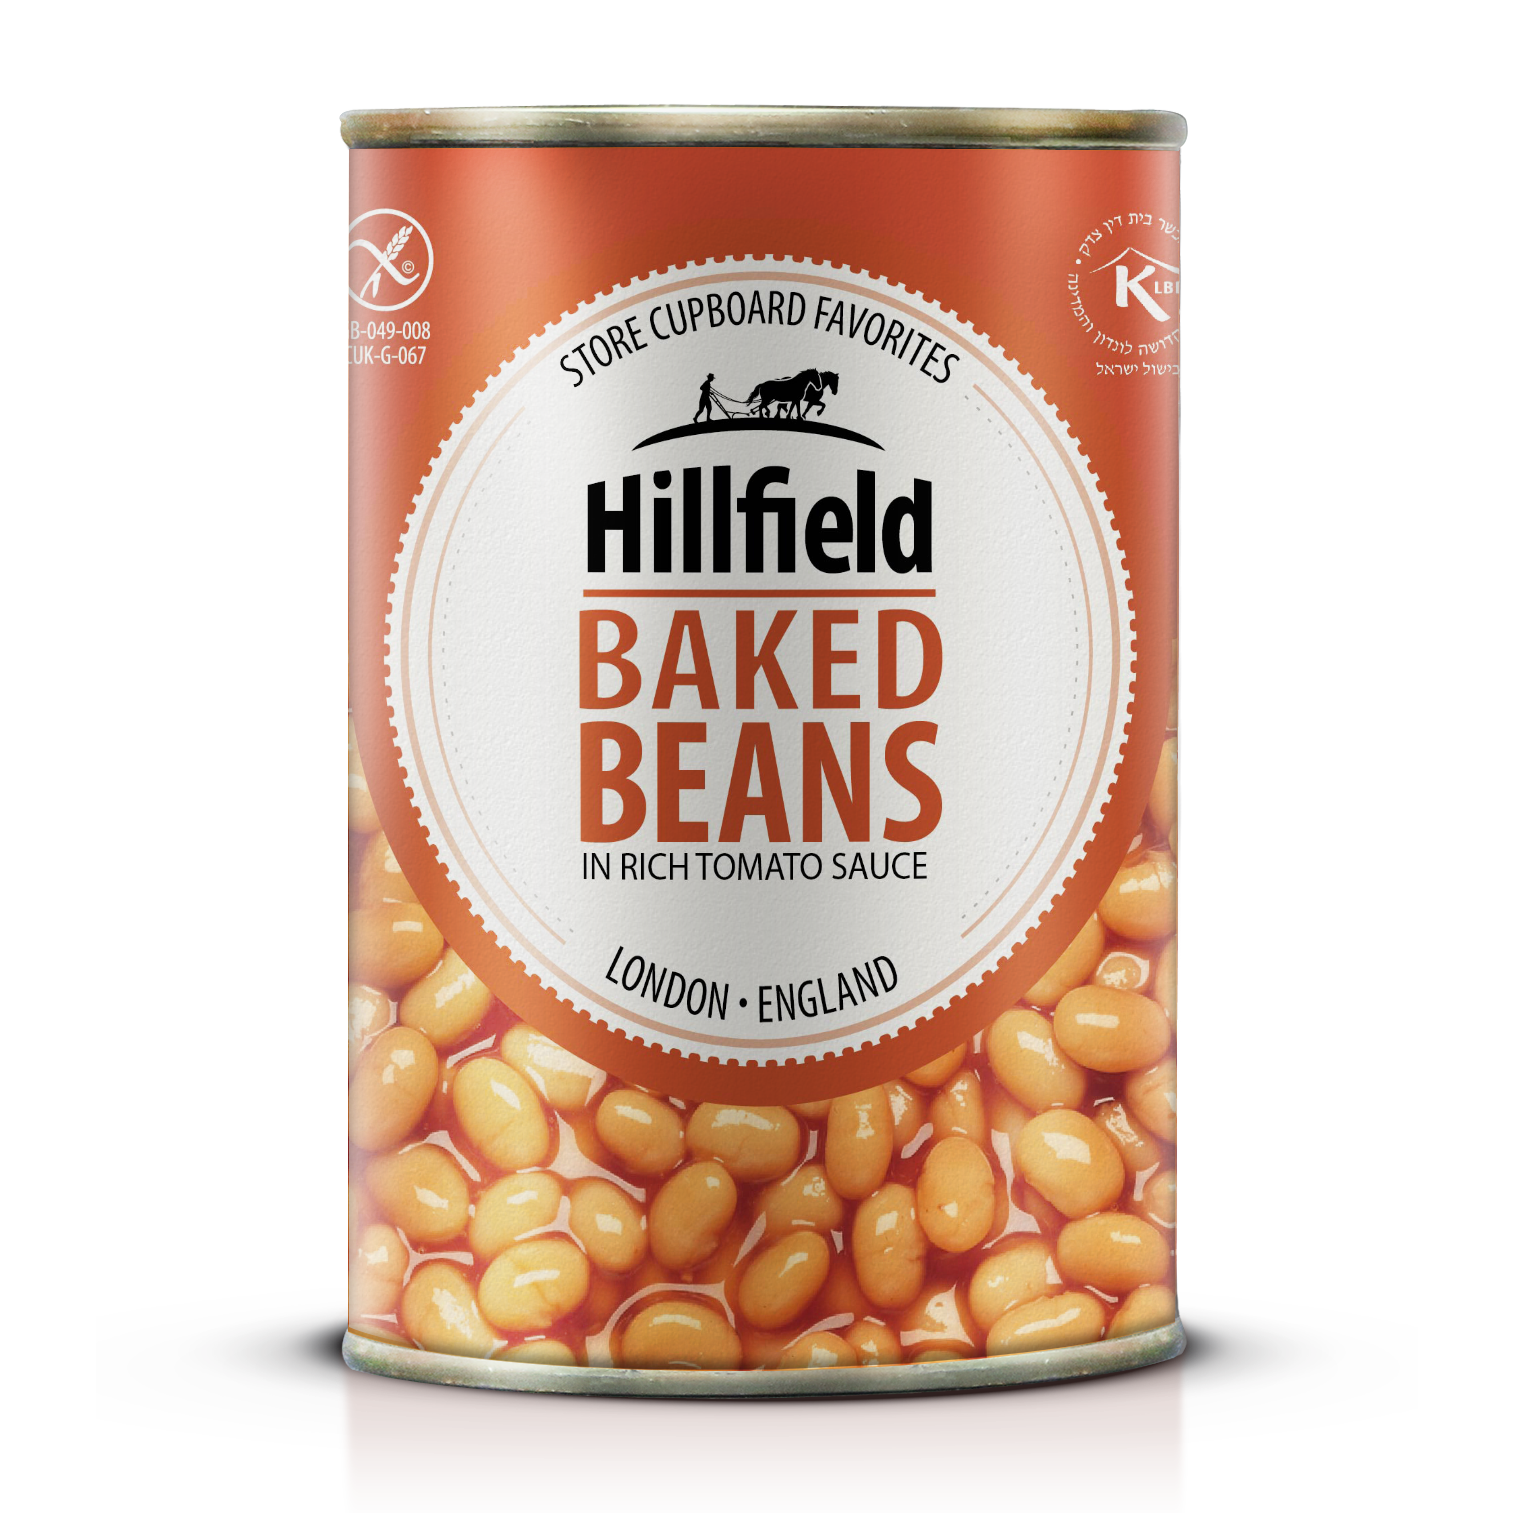 Hillfield Baked beans in tomato sauce, Italy, Legummes, Ready to eat, instant food, Coppola Foods